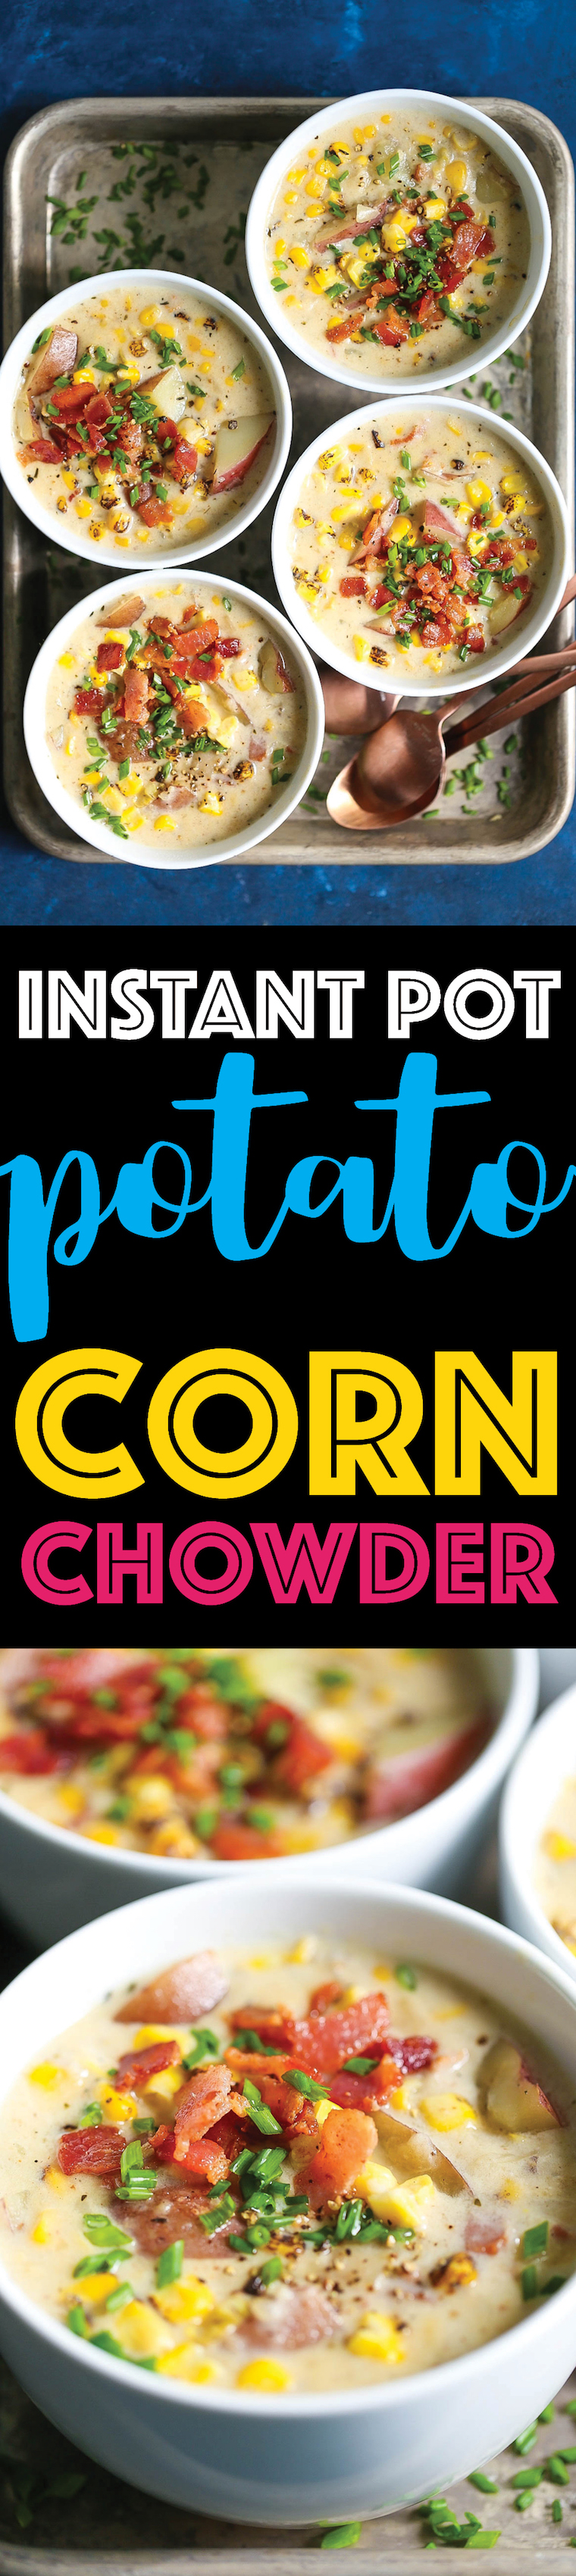 Instant Pot Potato Corn Chowder - So hearty, cozy and creamy – perfect for those cold nights! And it's made right in your pressure cooker so effortlessly! It's comfort food at it's easiest!